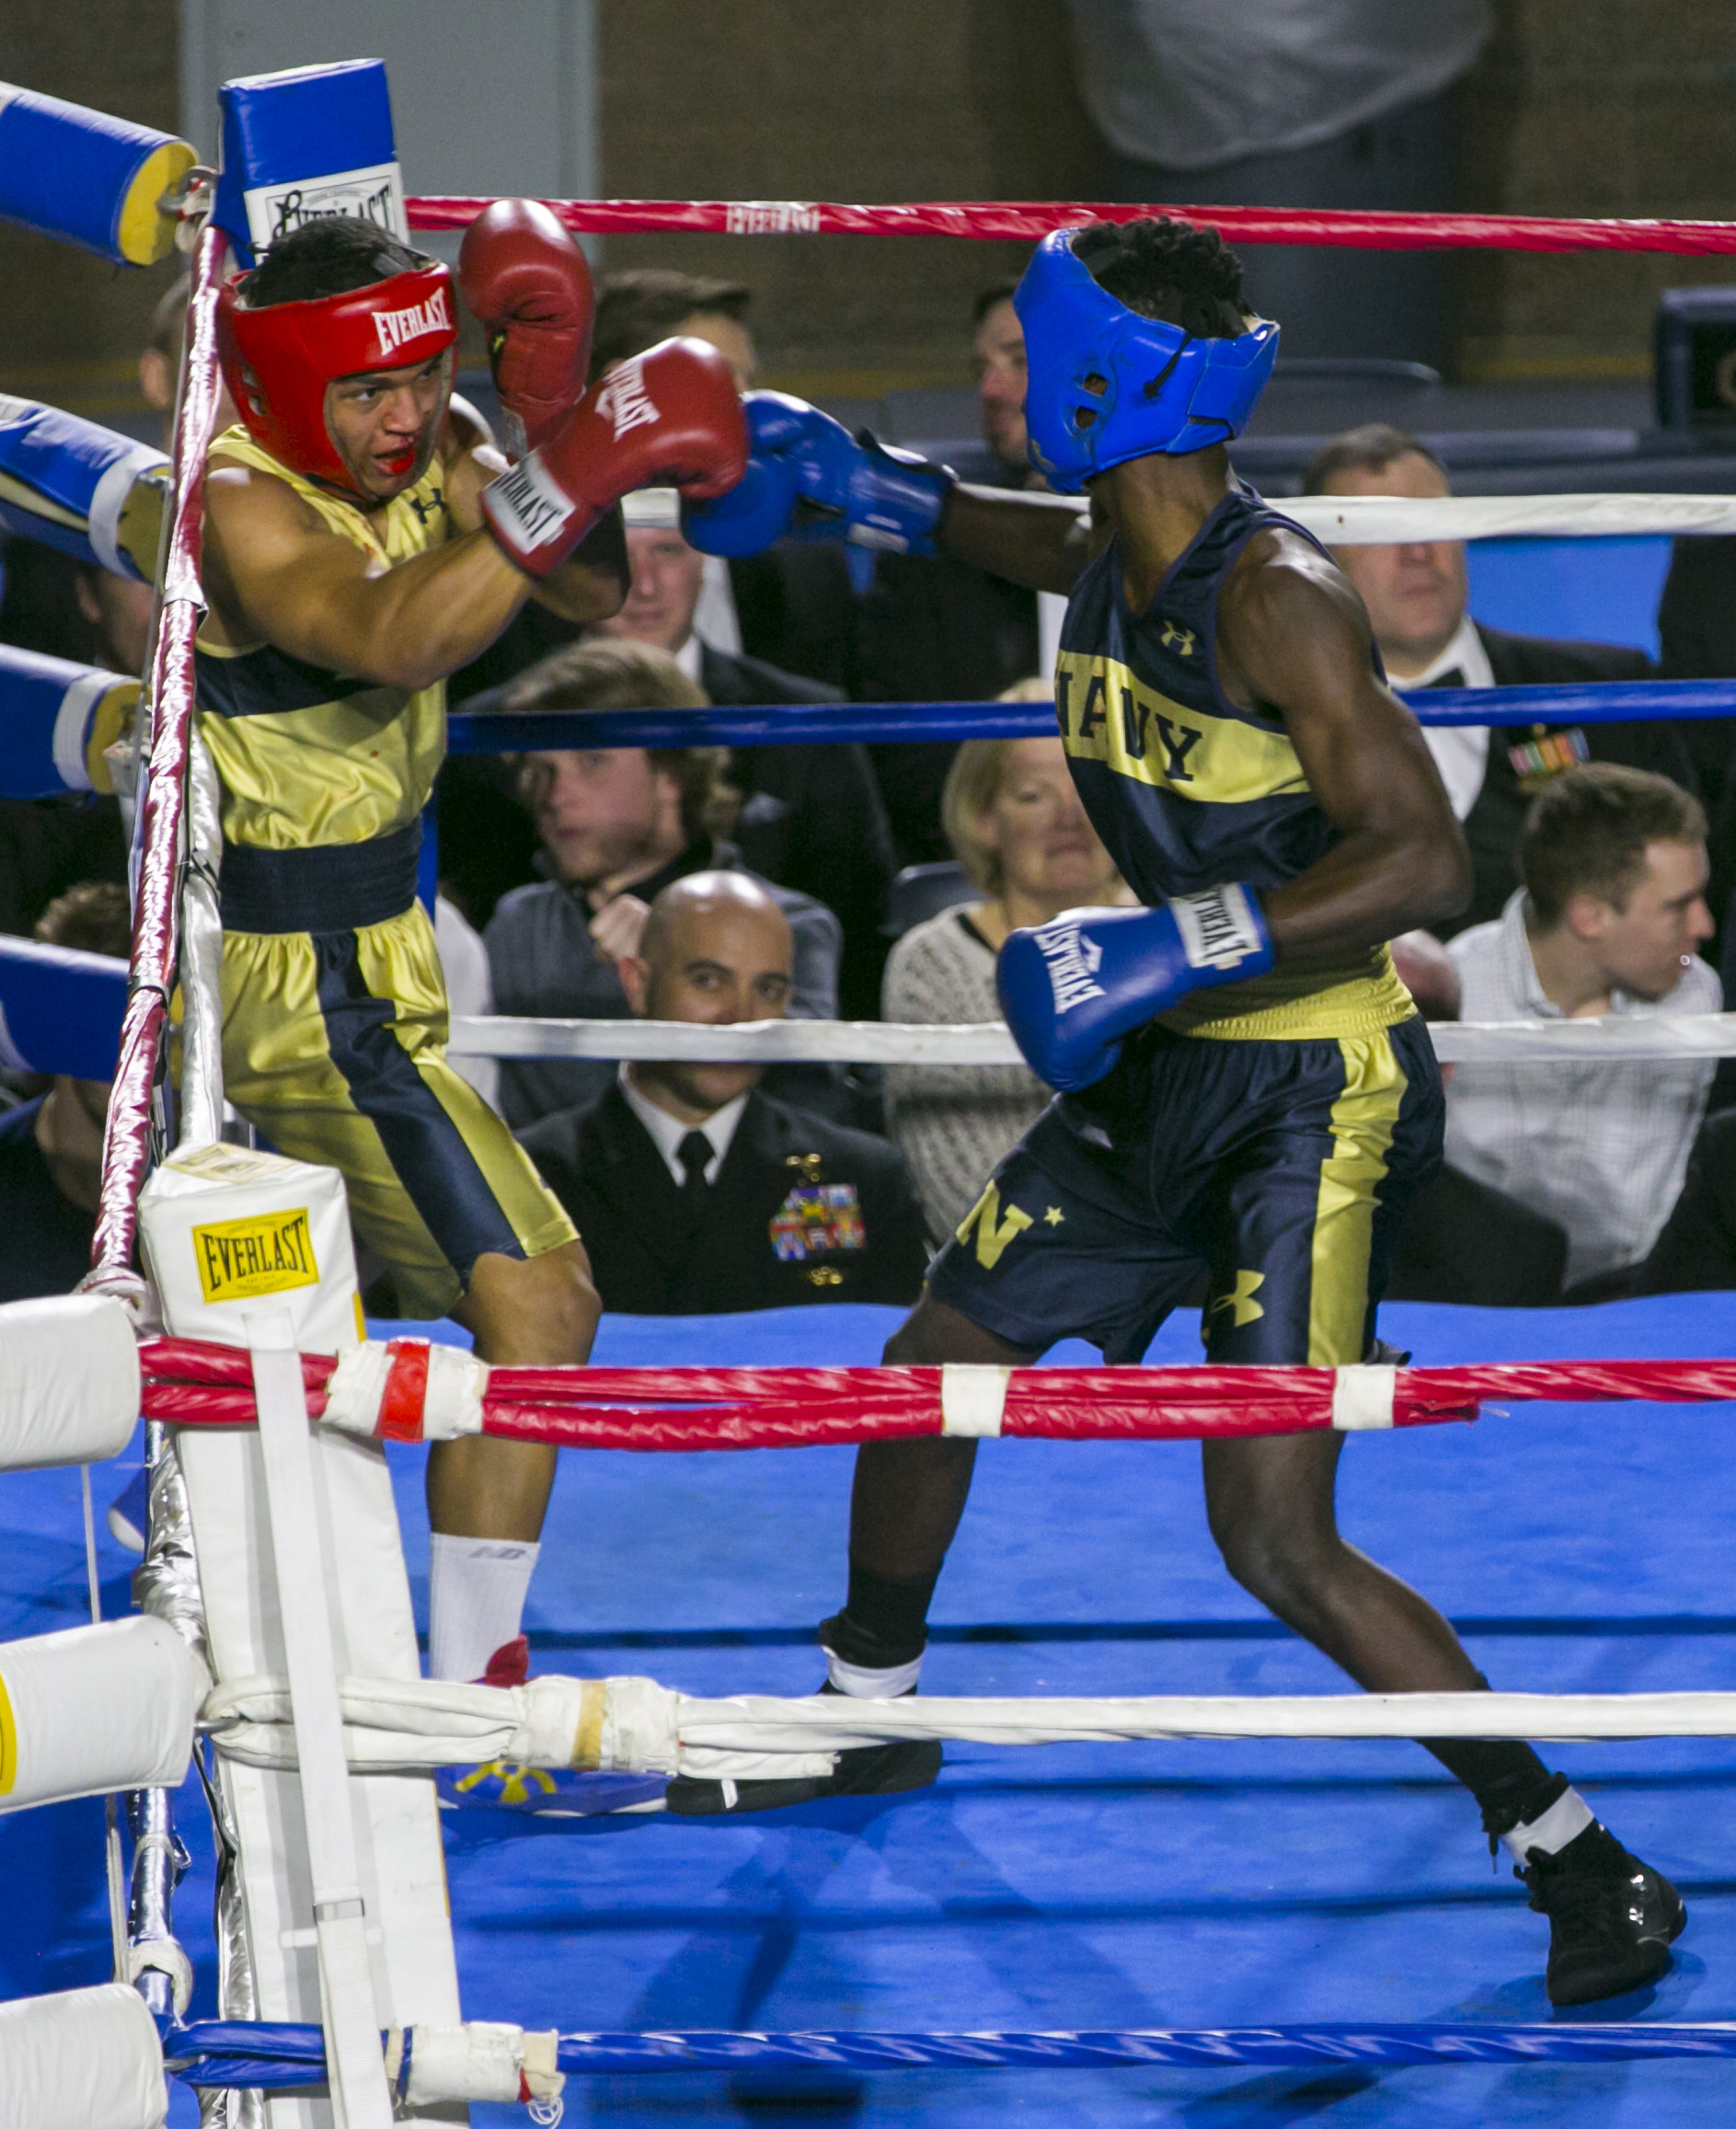 Kendell Louis (in blue) from Miami, FL backs Jordon McDaniel (in gold) from East Chicago, IN into the corner during the 147-lb weight class fight at the United States Naval Academy's 77th Brigade Boxing Championships held on Feb. 23, 2018. Louis won the bout. (Alan Lessig/Staff)